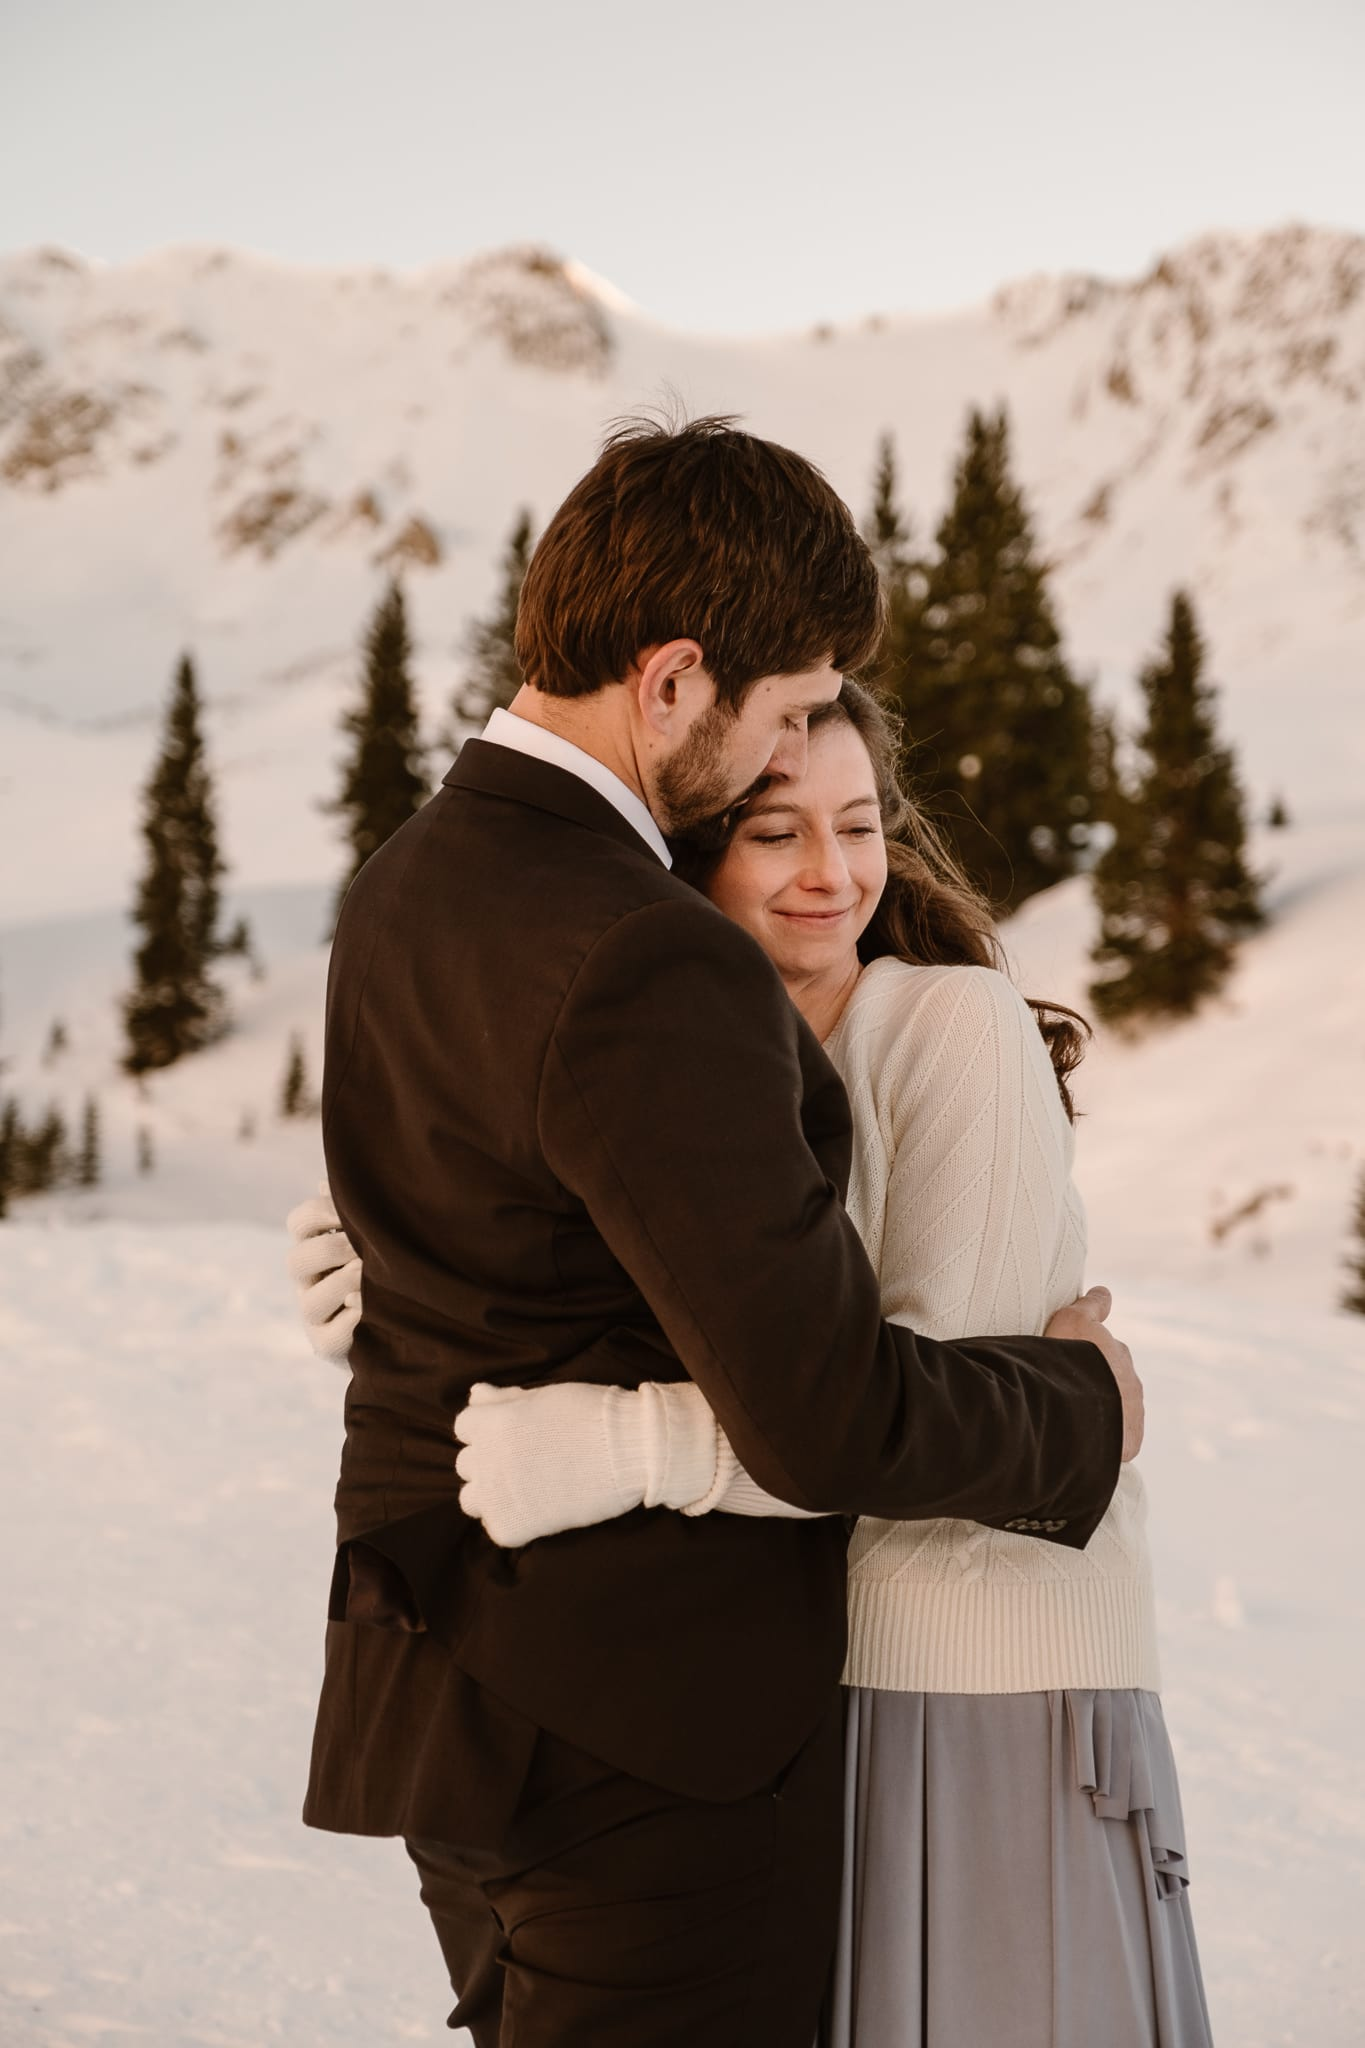 Bride and groom snuggle up close to stay warm at winter wedding, backcountry skiing elopement in Colorado, adventure wedding photographer